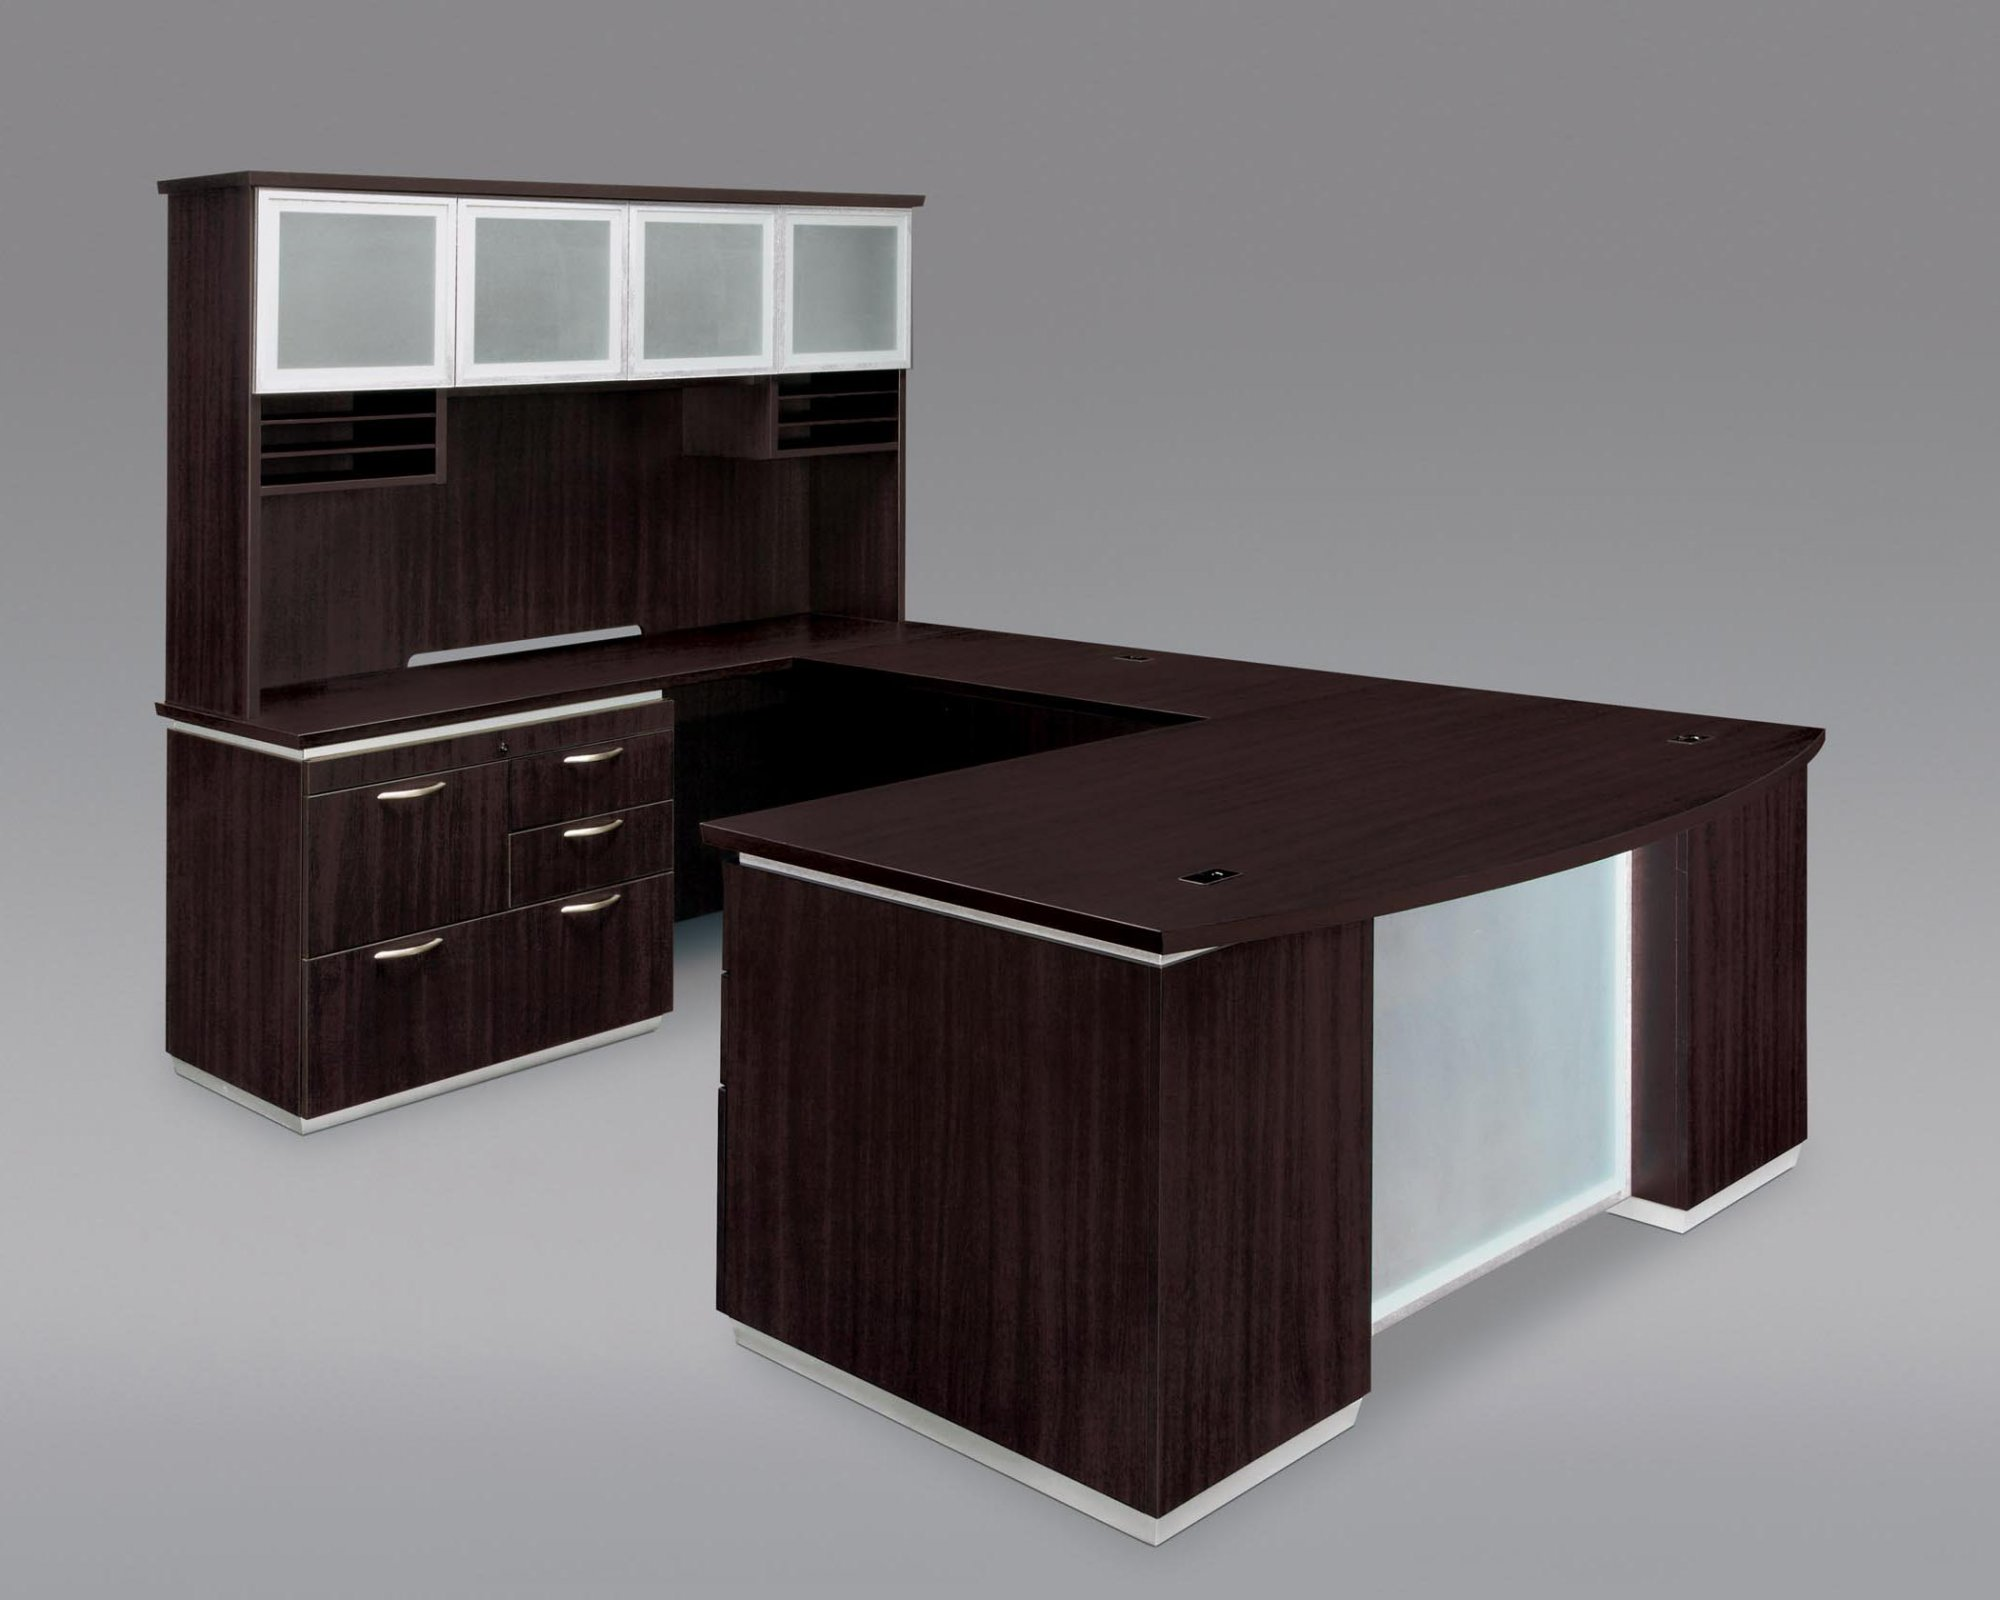 Pimlico  Left Personal File Bow Front U Desk with Frosted Glass Modesty Panel